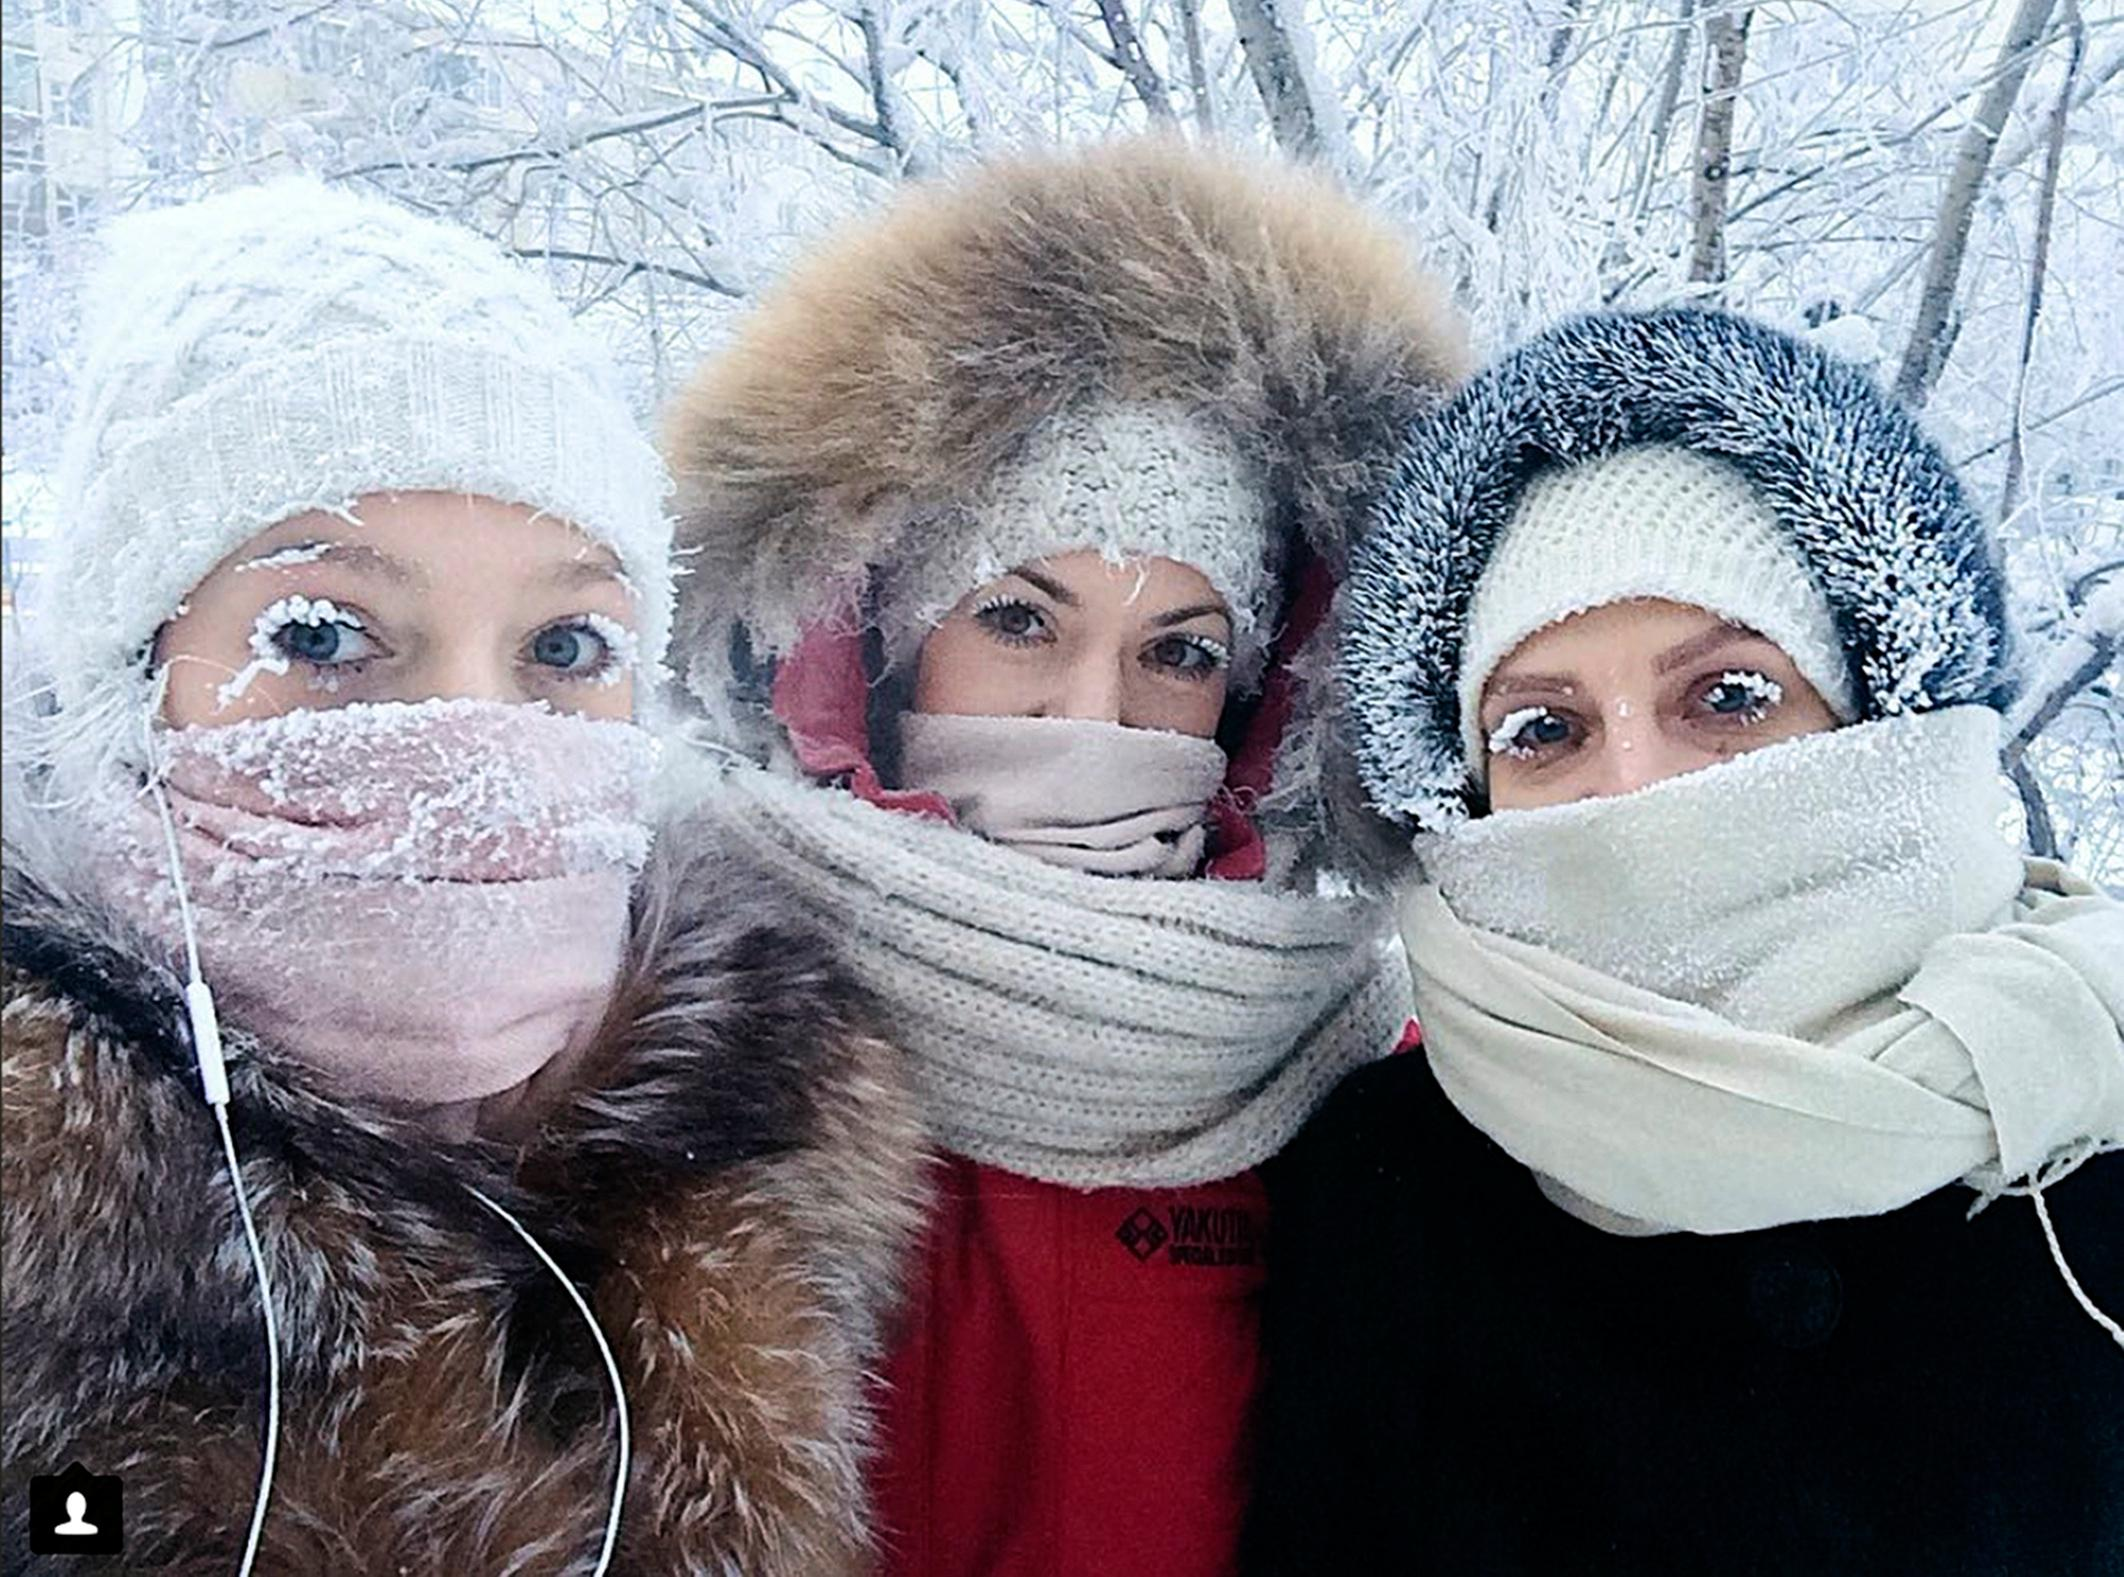 In this photo taken on Sunday, Jan. 14, 2018, Anastasia Gruzdeva, left, poses for selfie with her friends as the temperature dropped to about -50 degrees (-58 degrees Fahrenheit) in Yakutsk, Russia. Temperatures in the remote, diamond-rich Russian region of Yakutia have dropped to near-record lows, plunging to -67 degrees Centigrade (-88.6 degrees Fahrenheit) in some areas. (sakhalife.ru photo via AP)